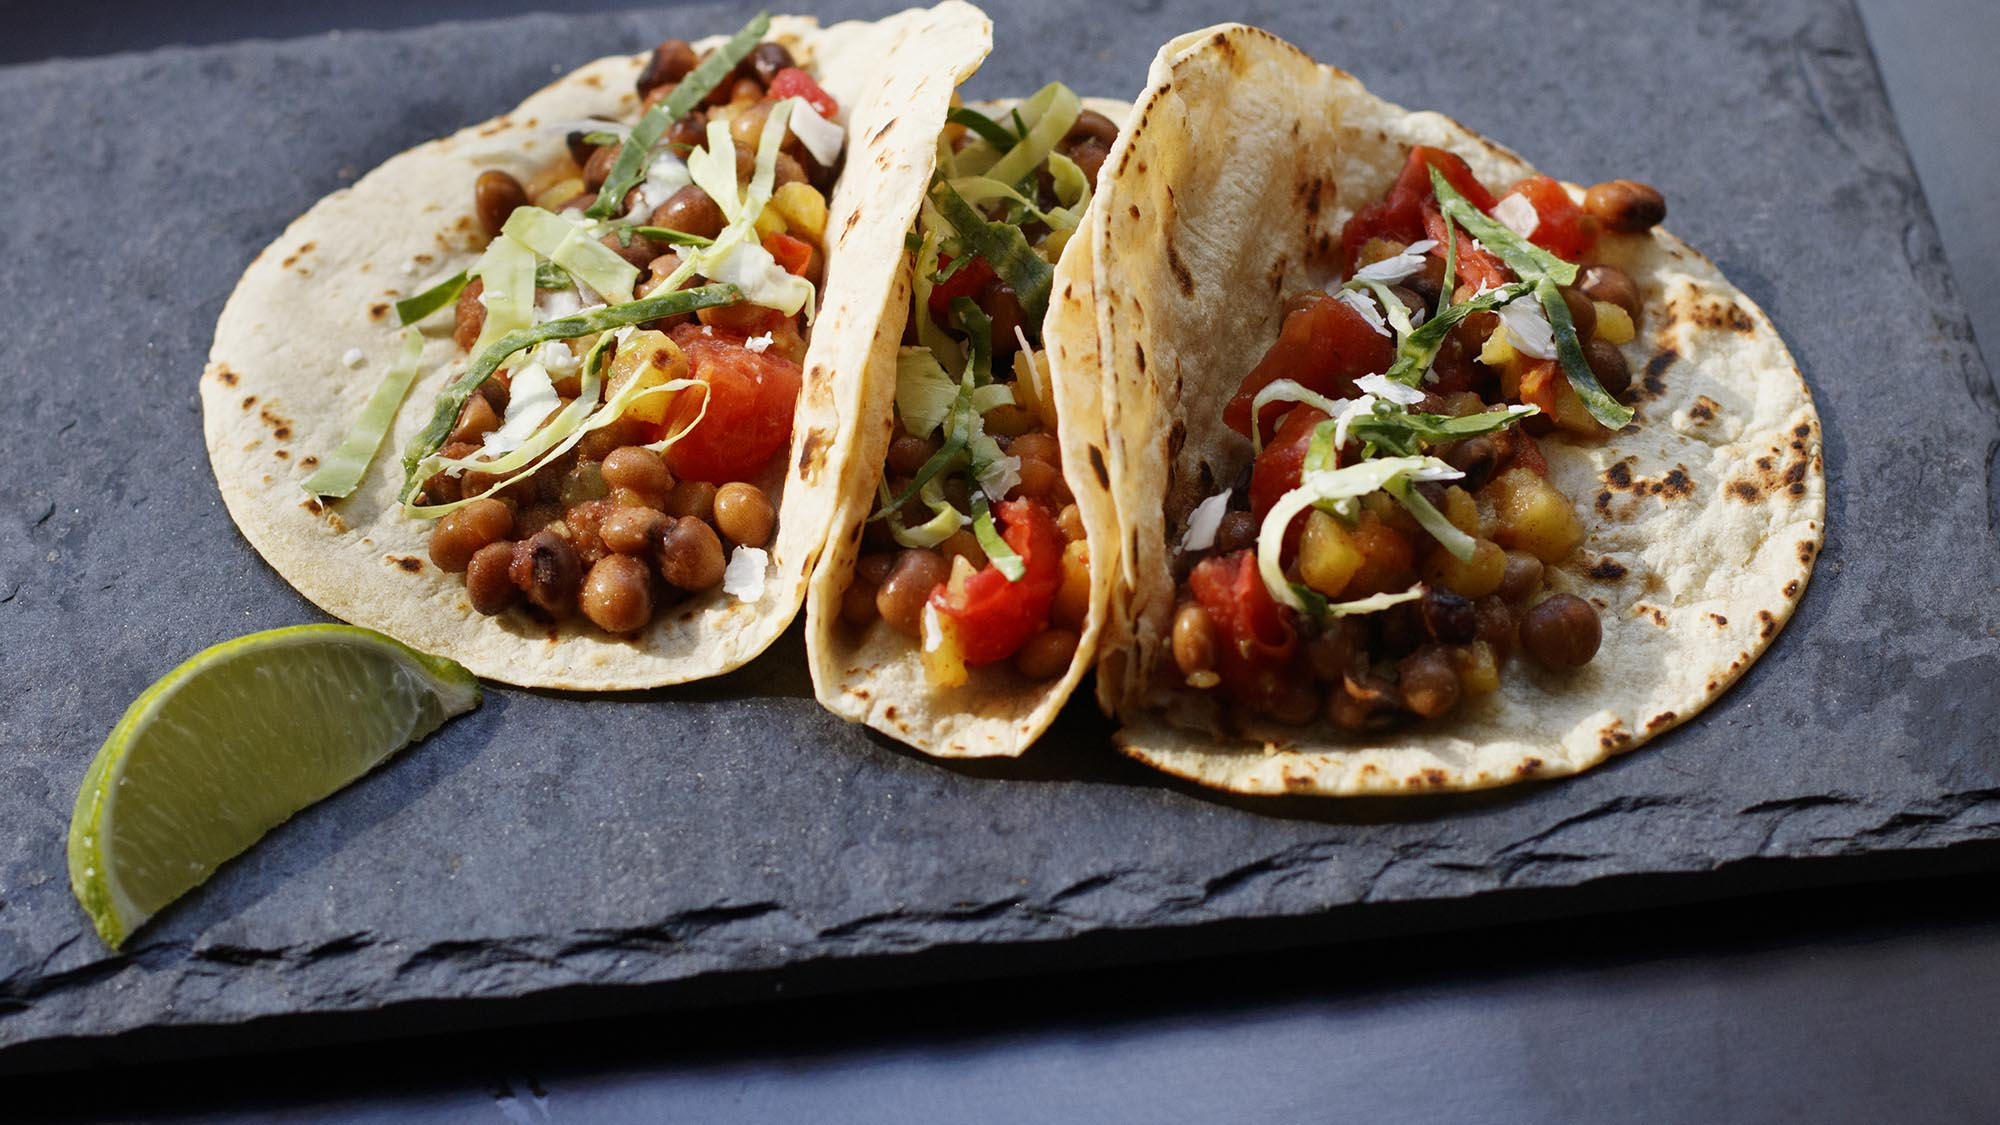 McCormick Gourmet Pigeon Pea Tacos Al Pastor with Coconut Lime Slaw